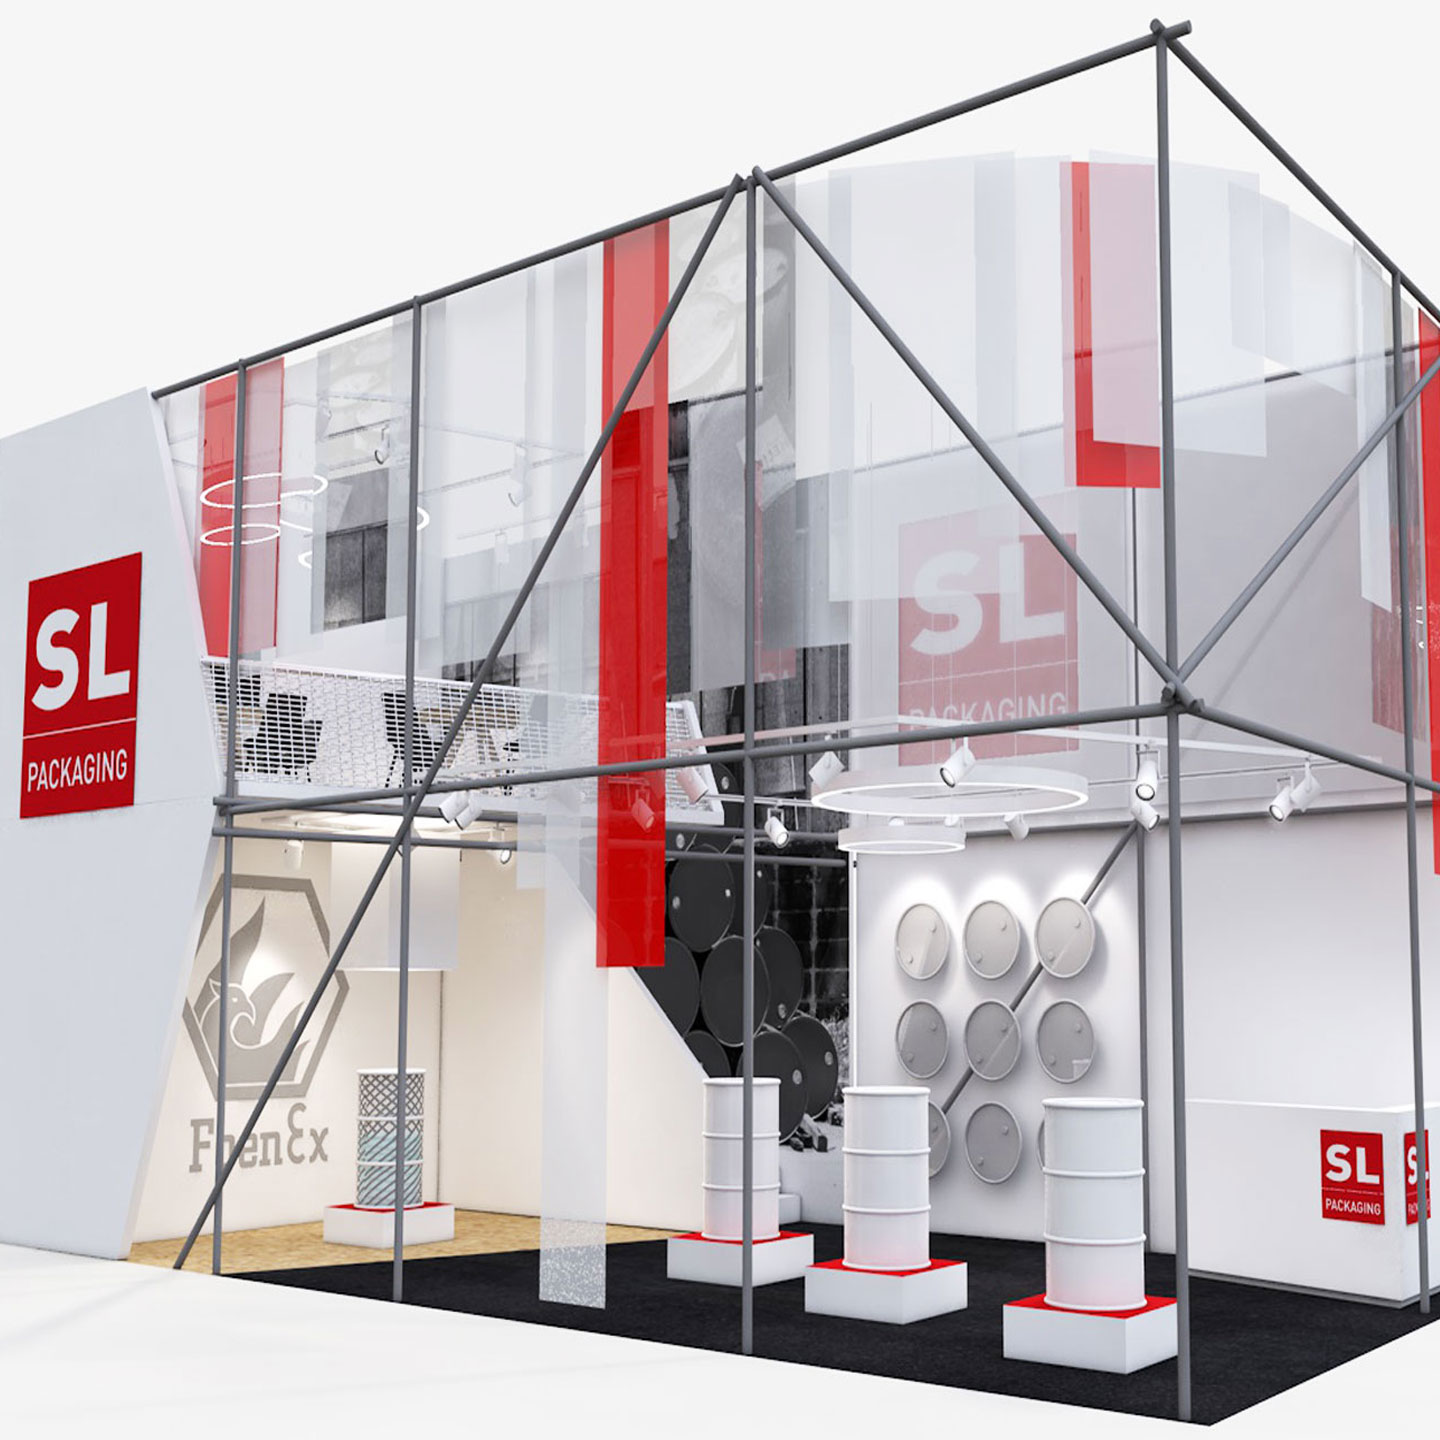 SL-PACKAGING-Messestand_7